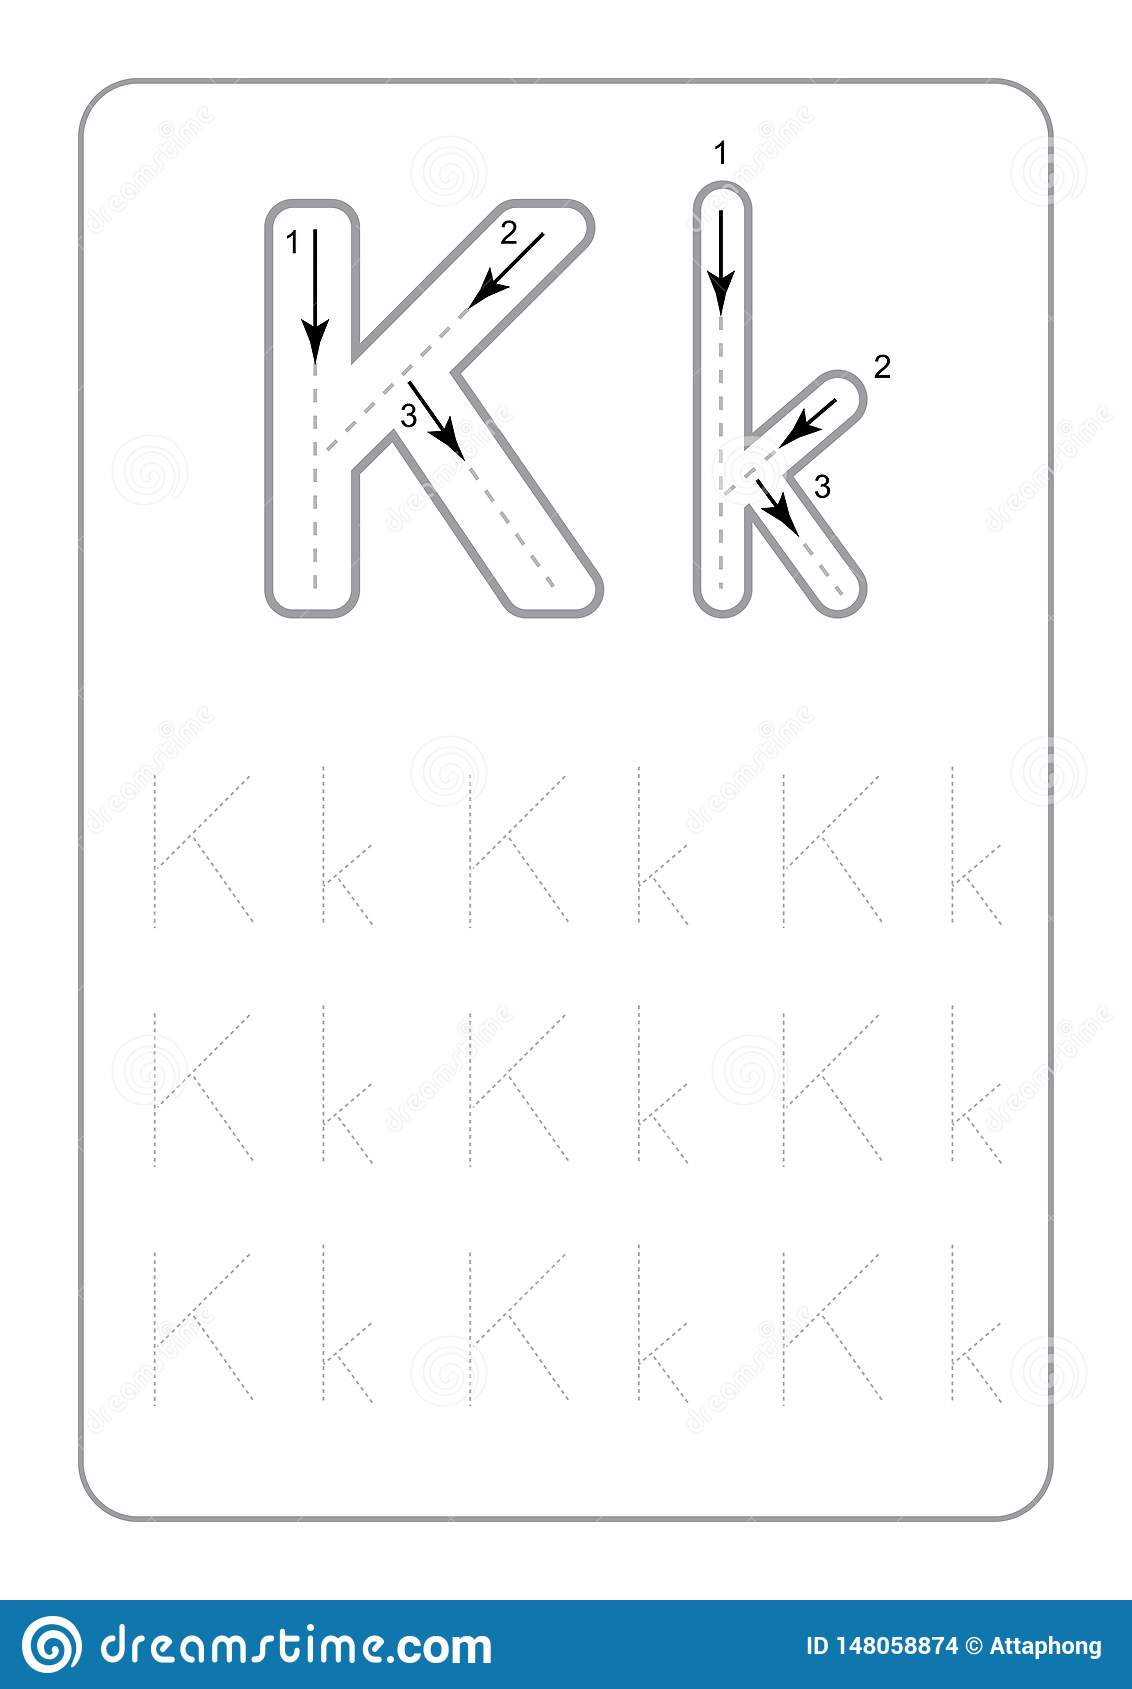 Kindergarten Tracing Letters Worksheets Monochrome Tracing for Free Kindergarten Worksheets Tracing Letters